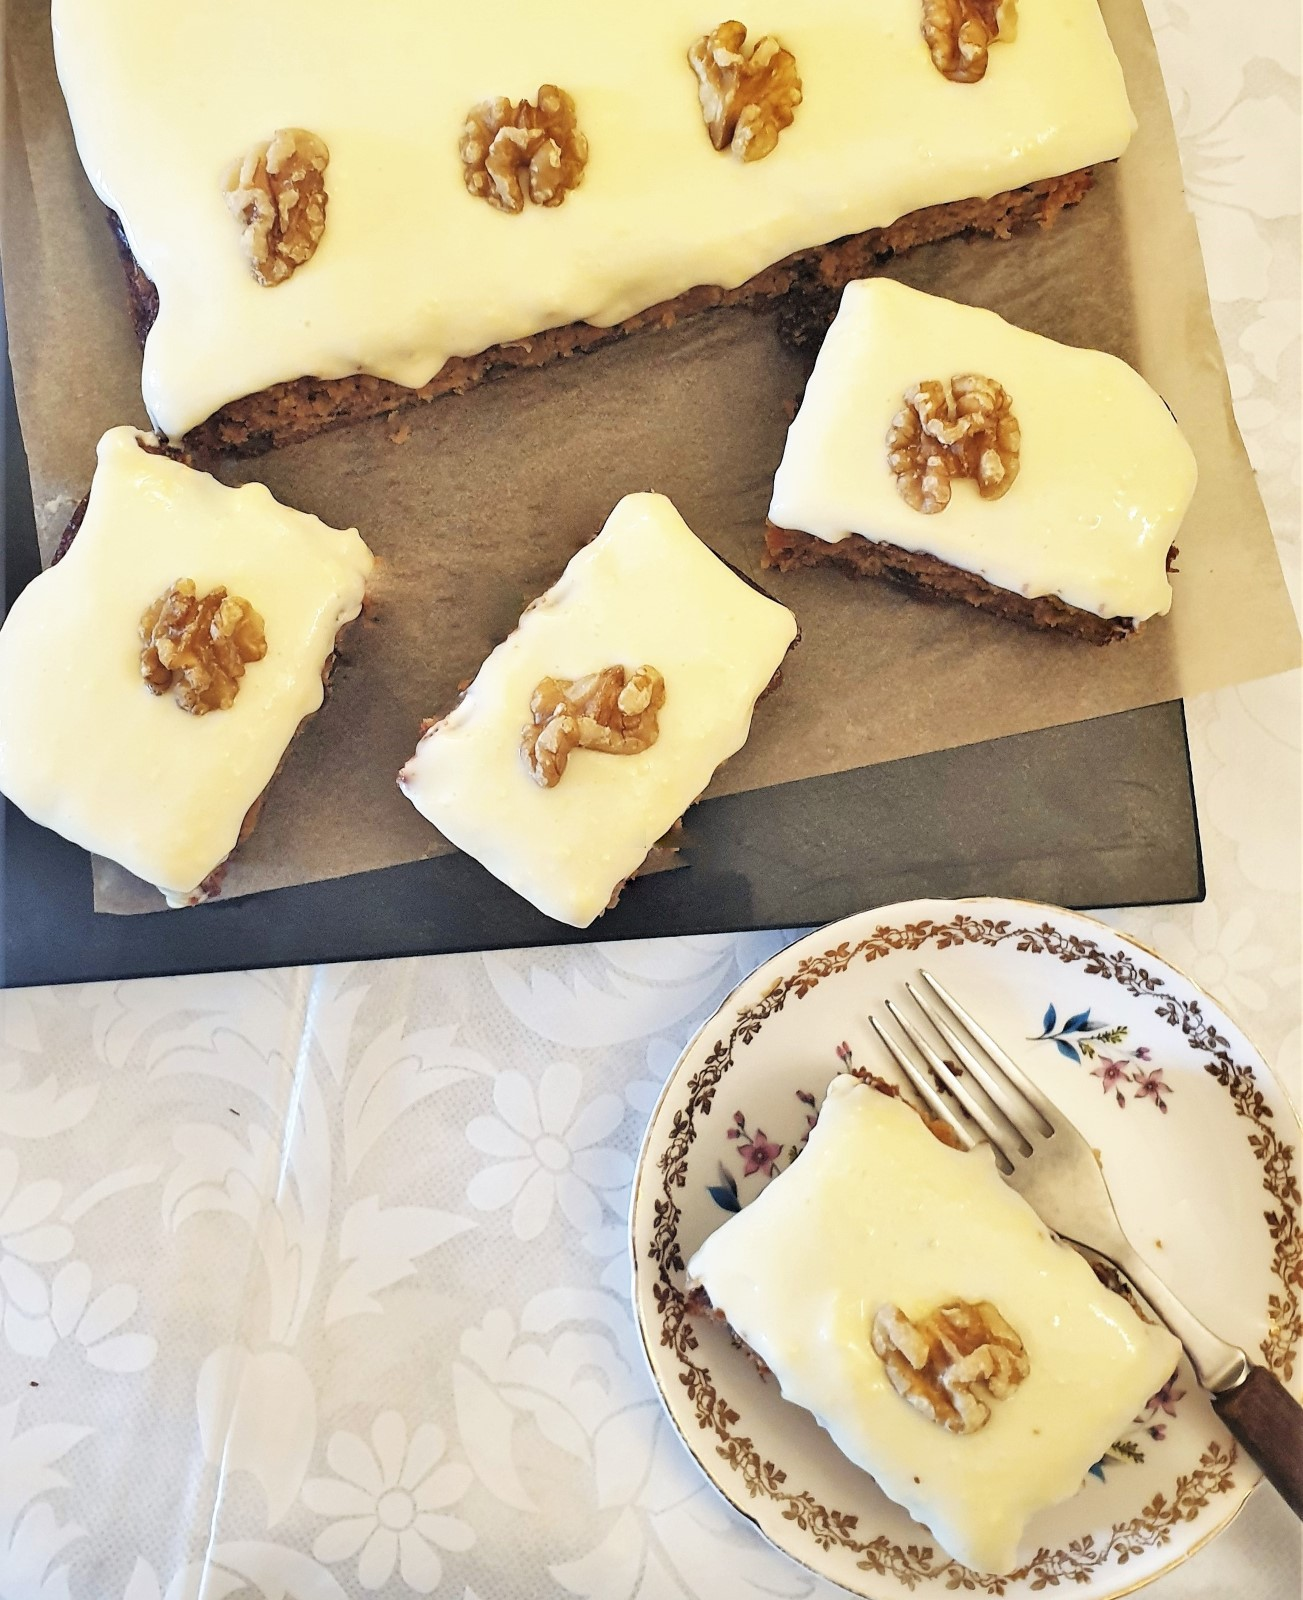 Overhead shot of slices of carrot and walnut cake.